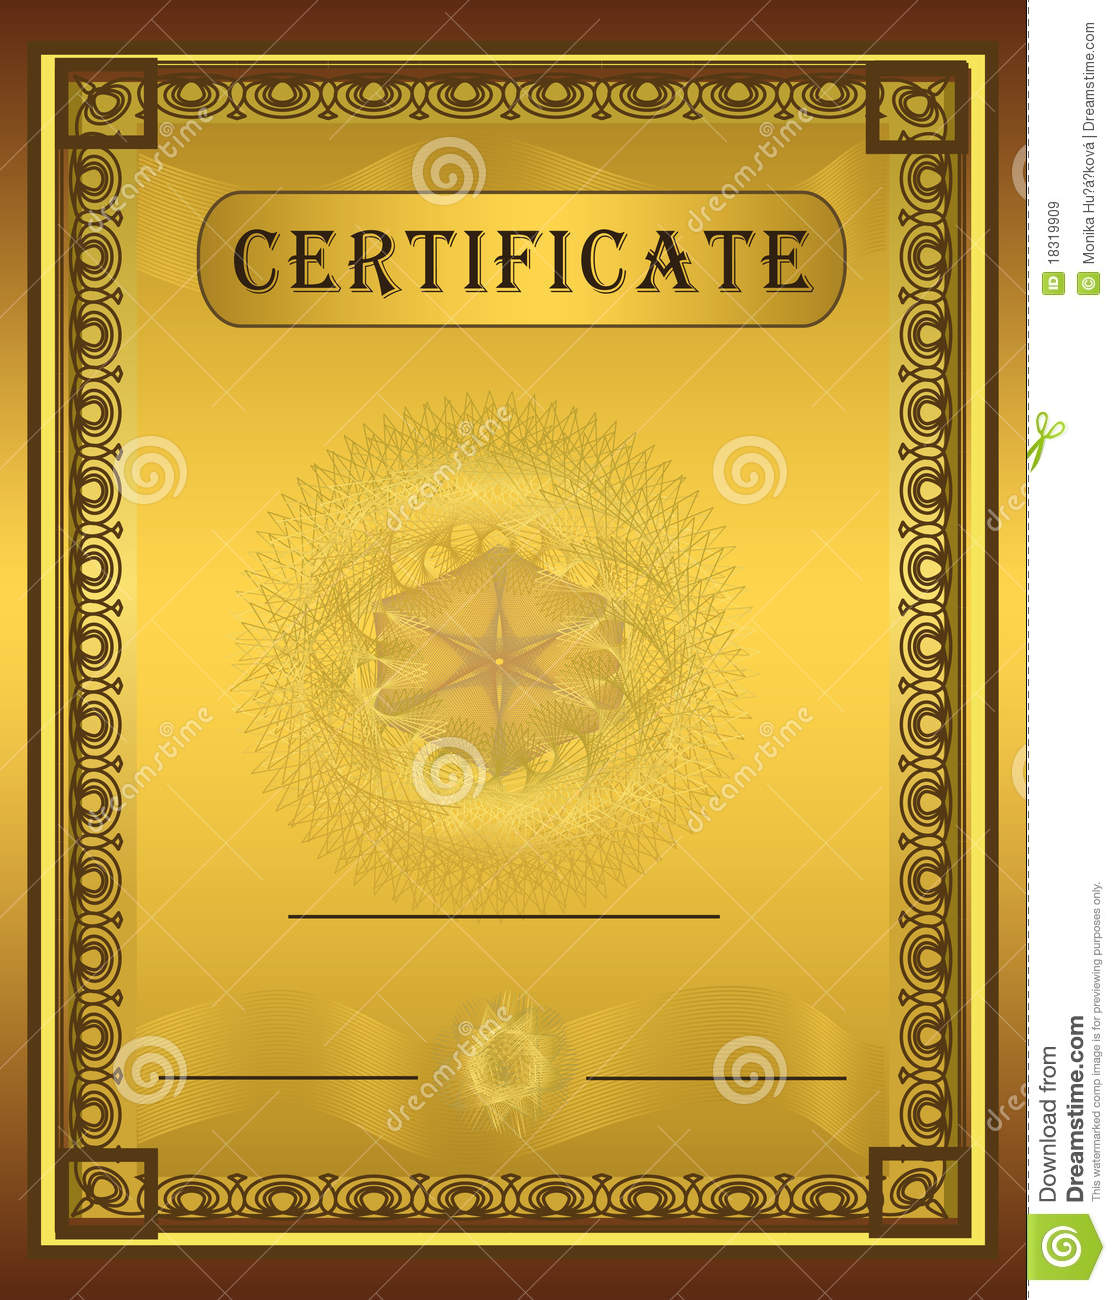 Certificate Gold Frame Vertical Stock Vector ...